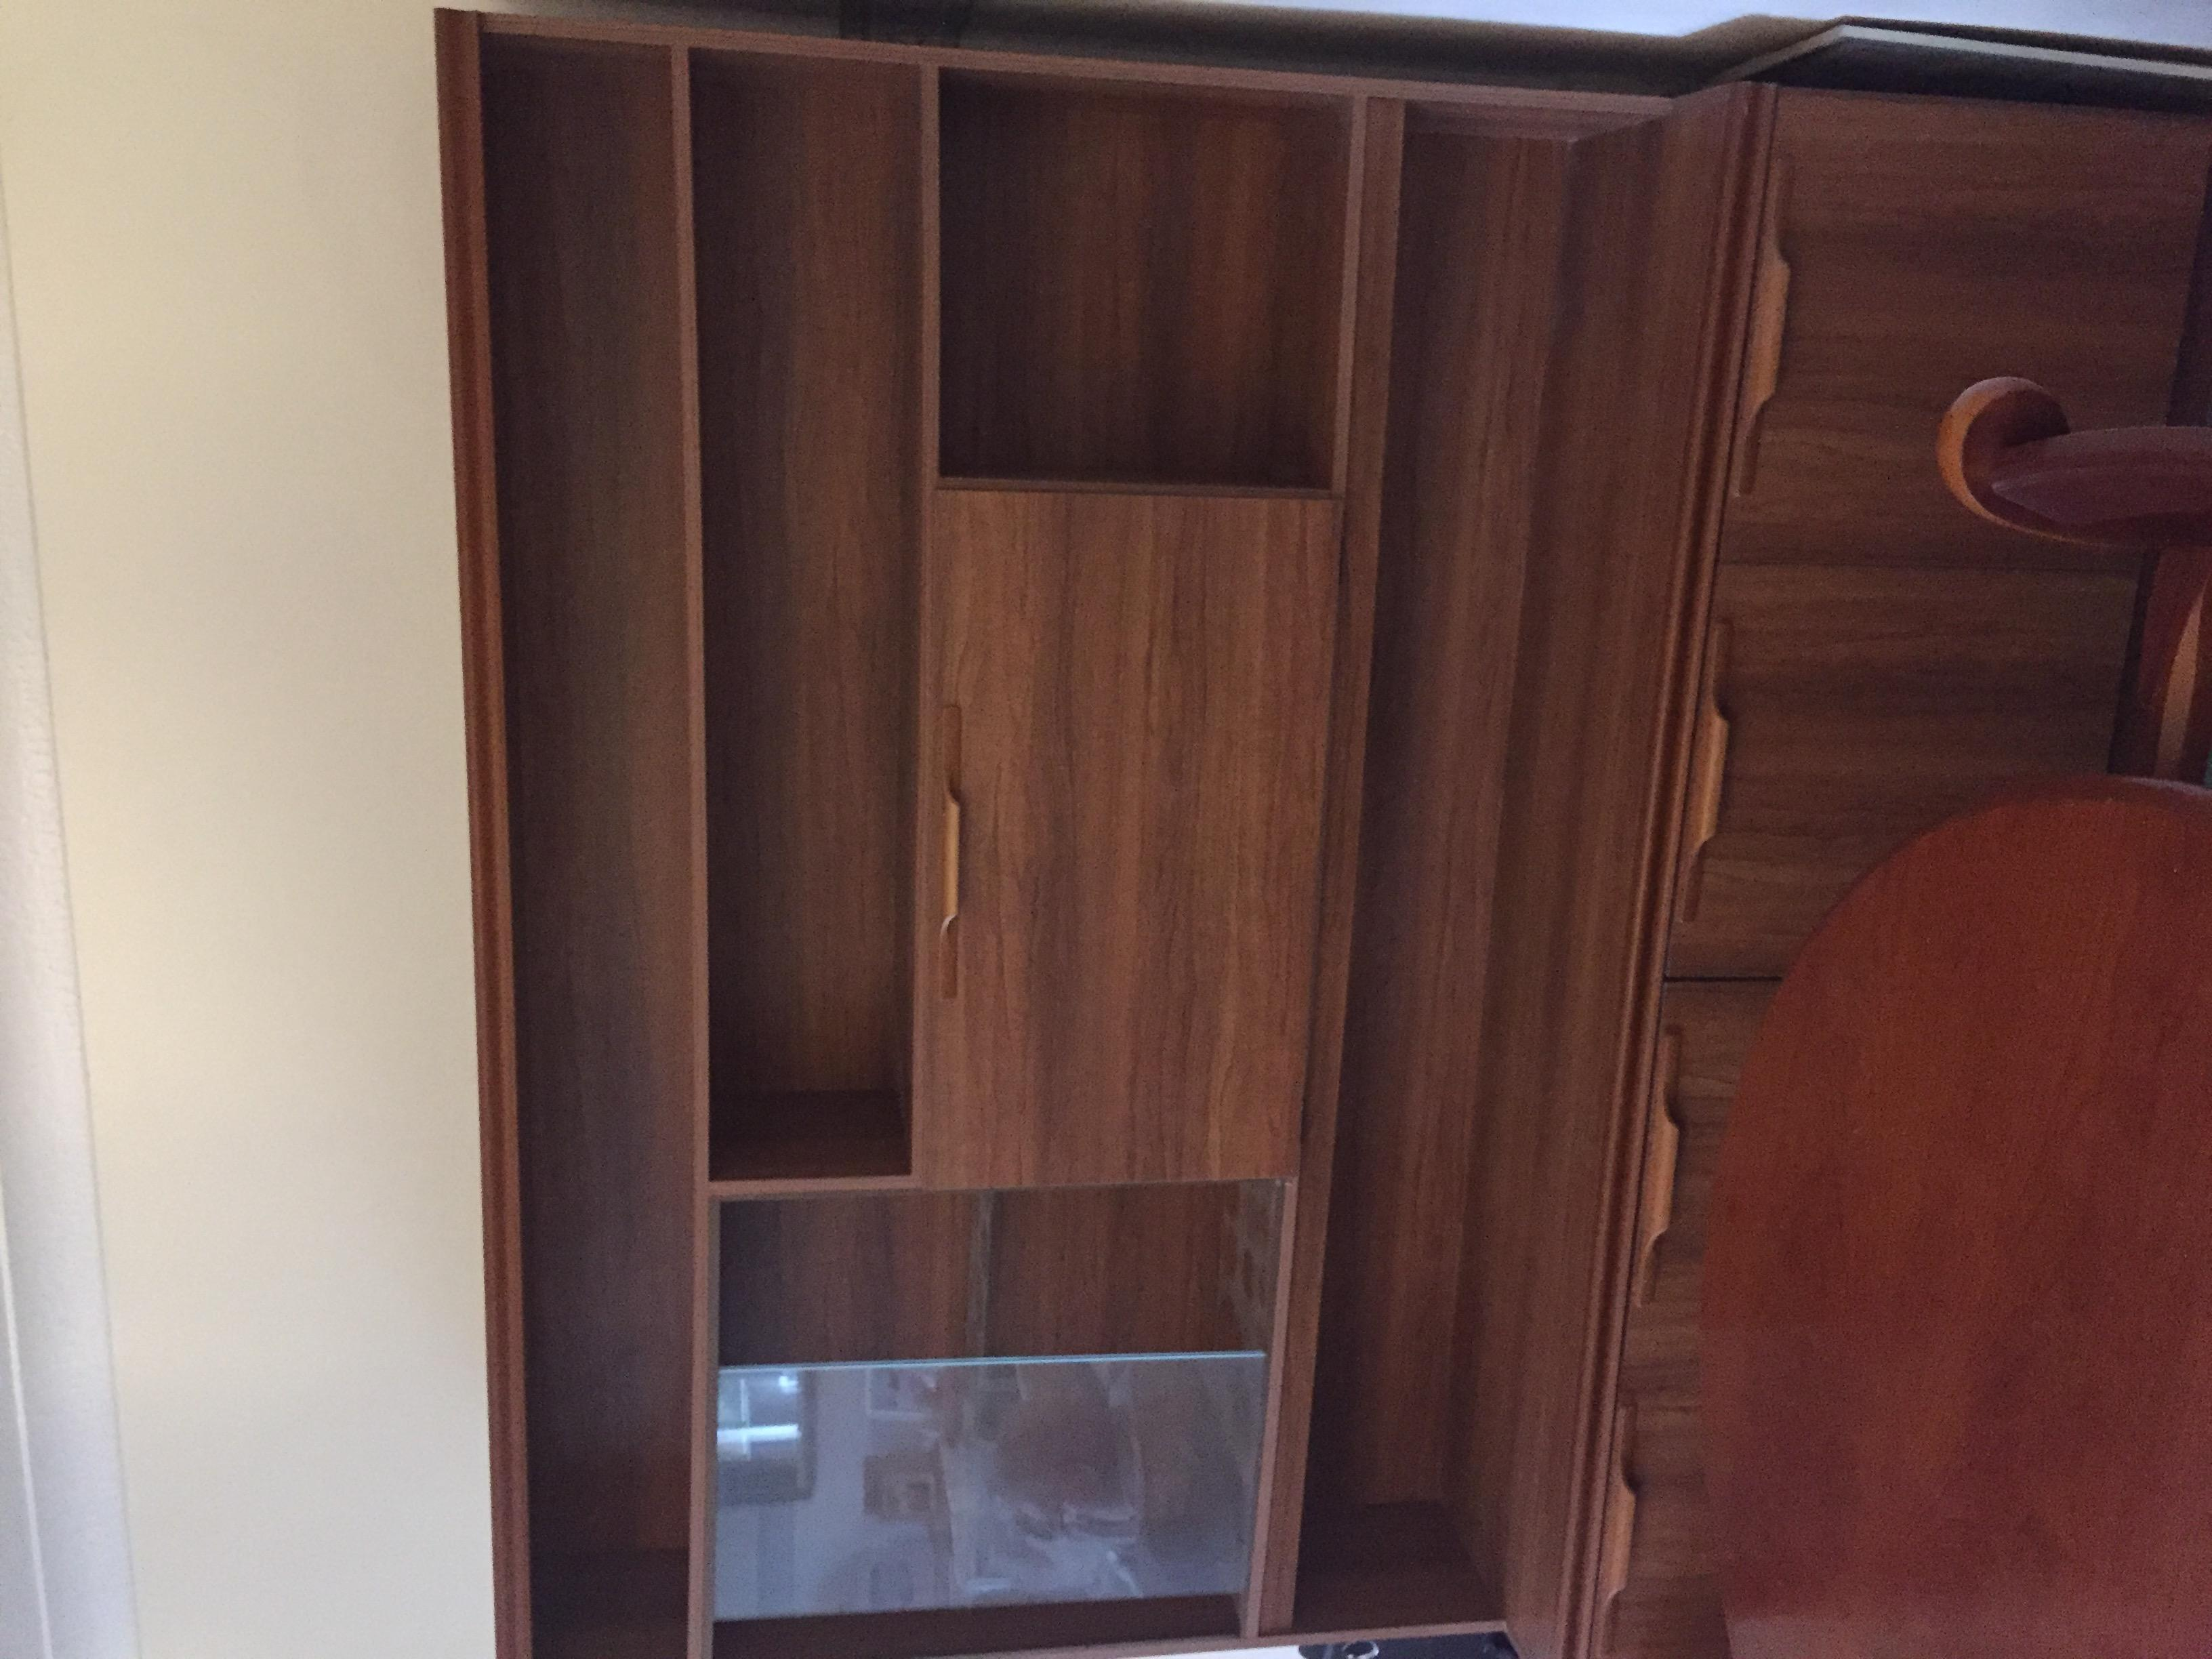 Wood and glass display unit